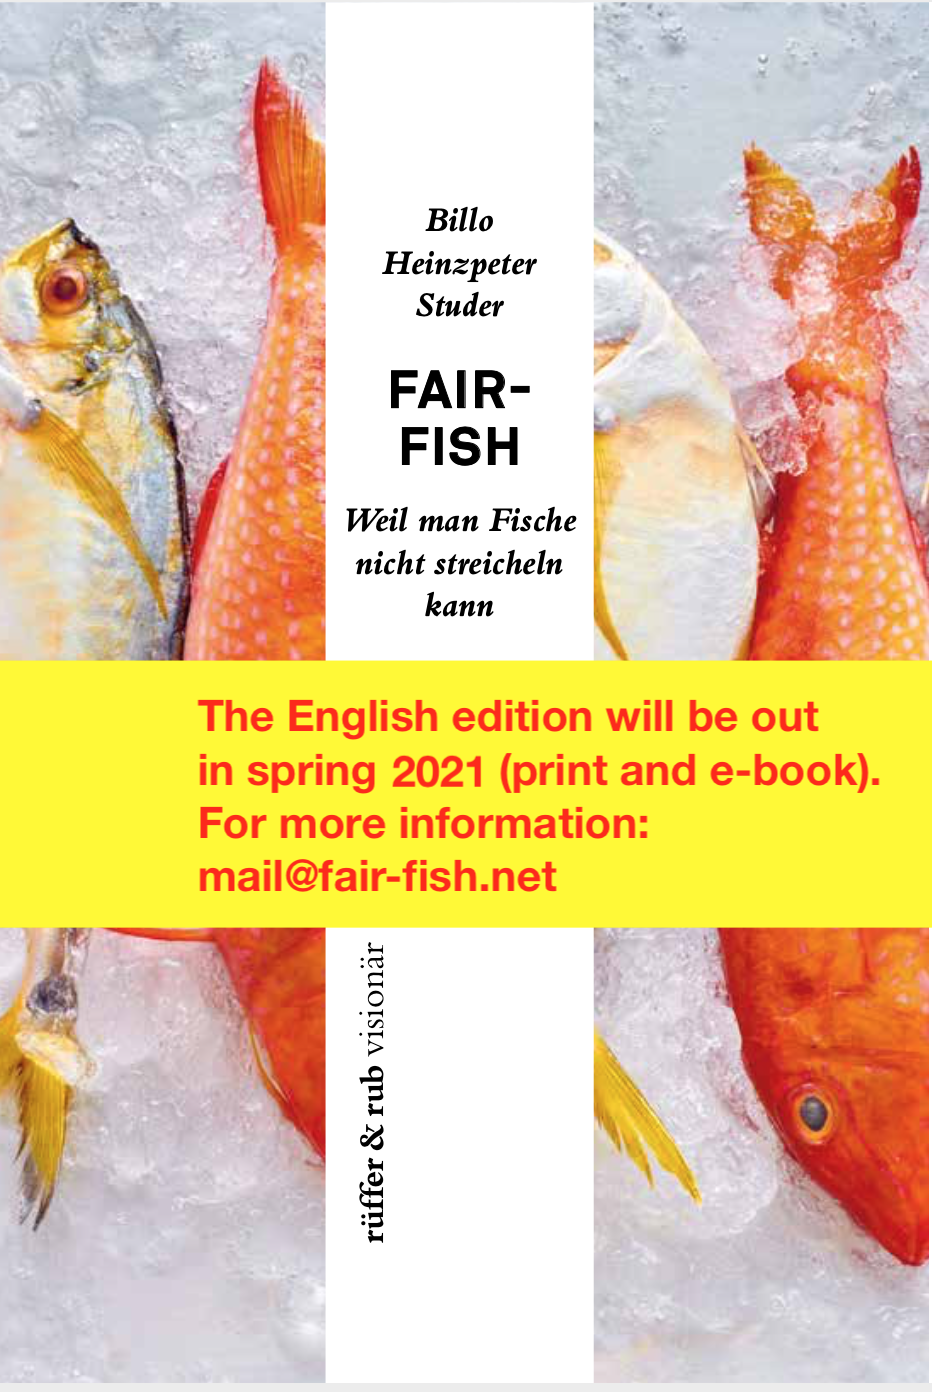 fair-fish-buch_cover_en.png